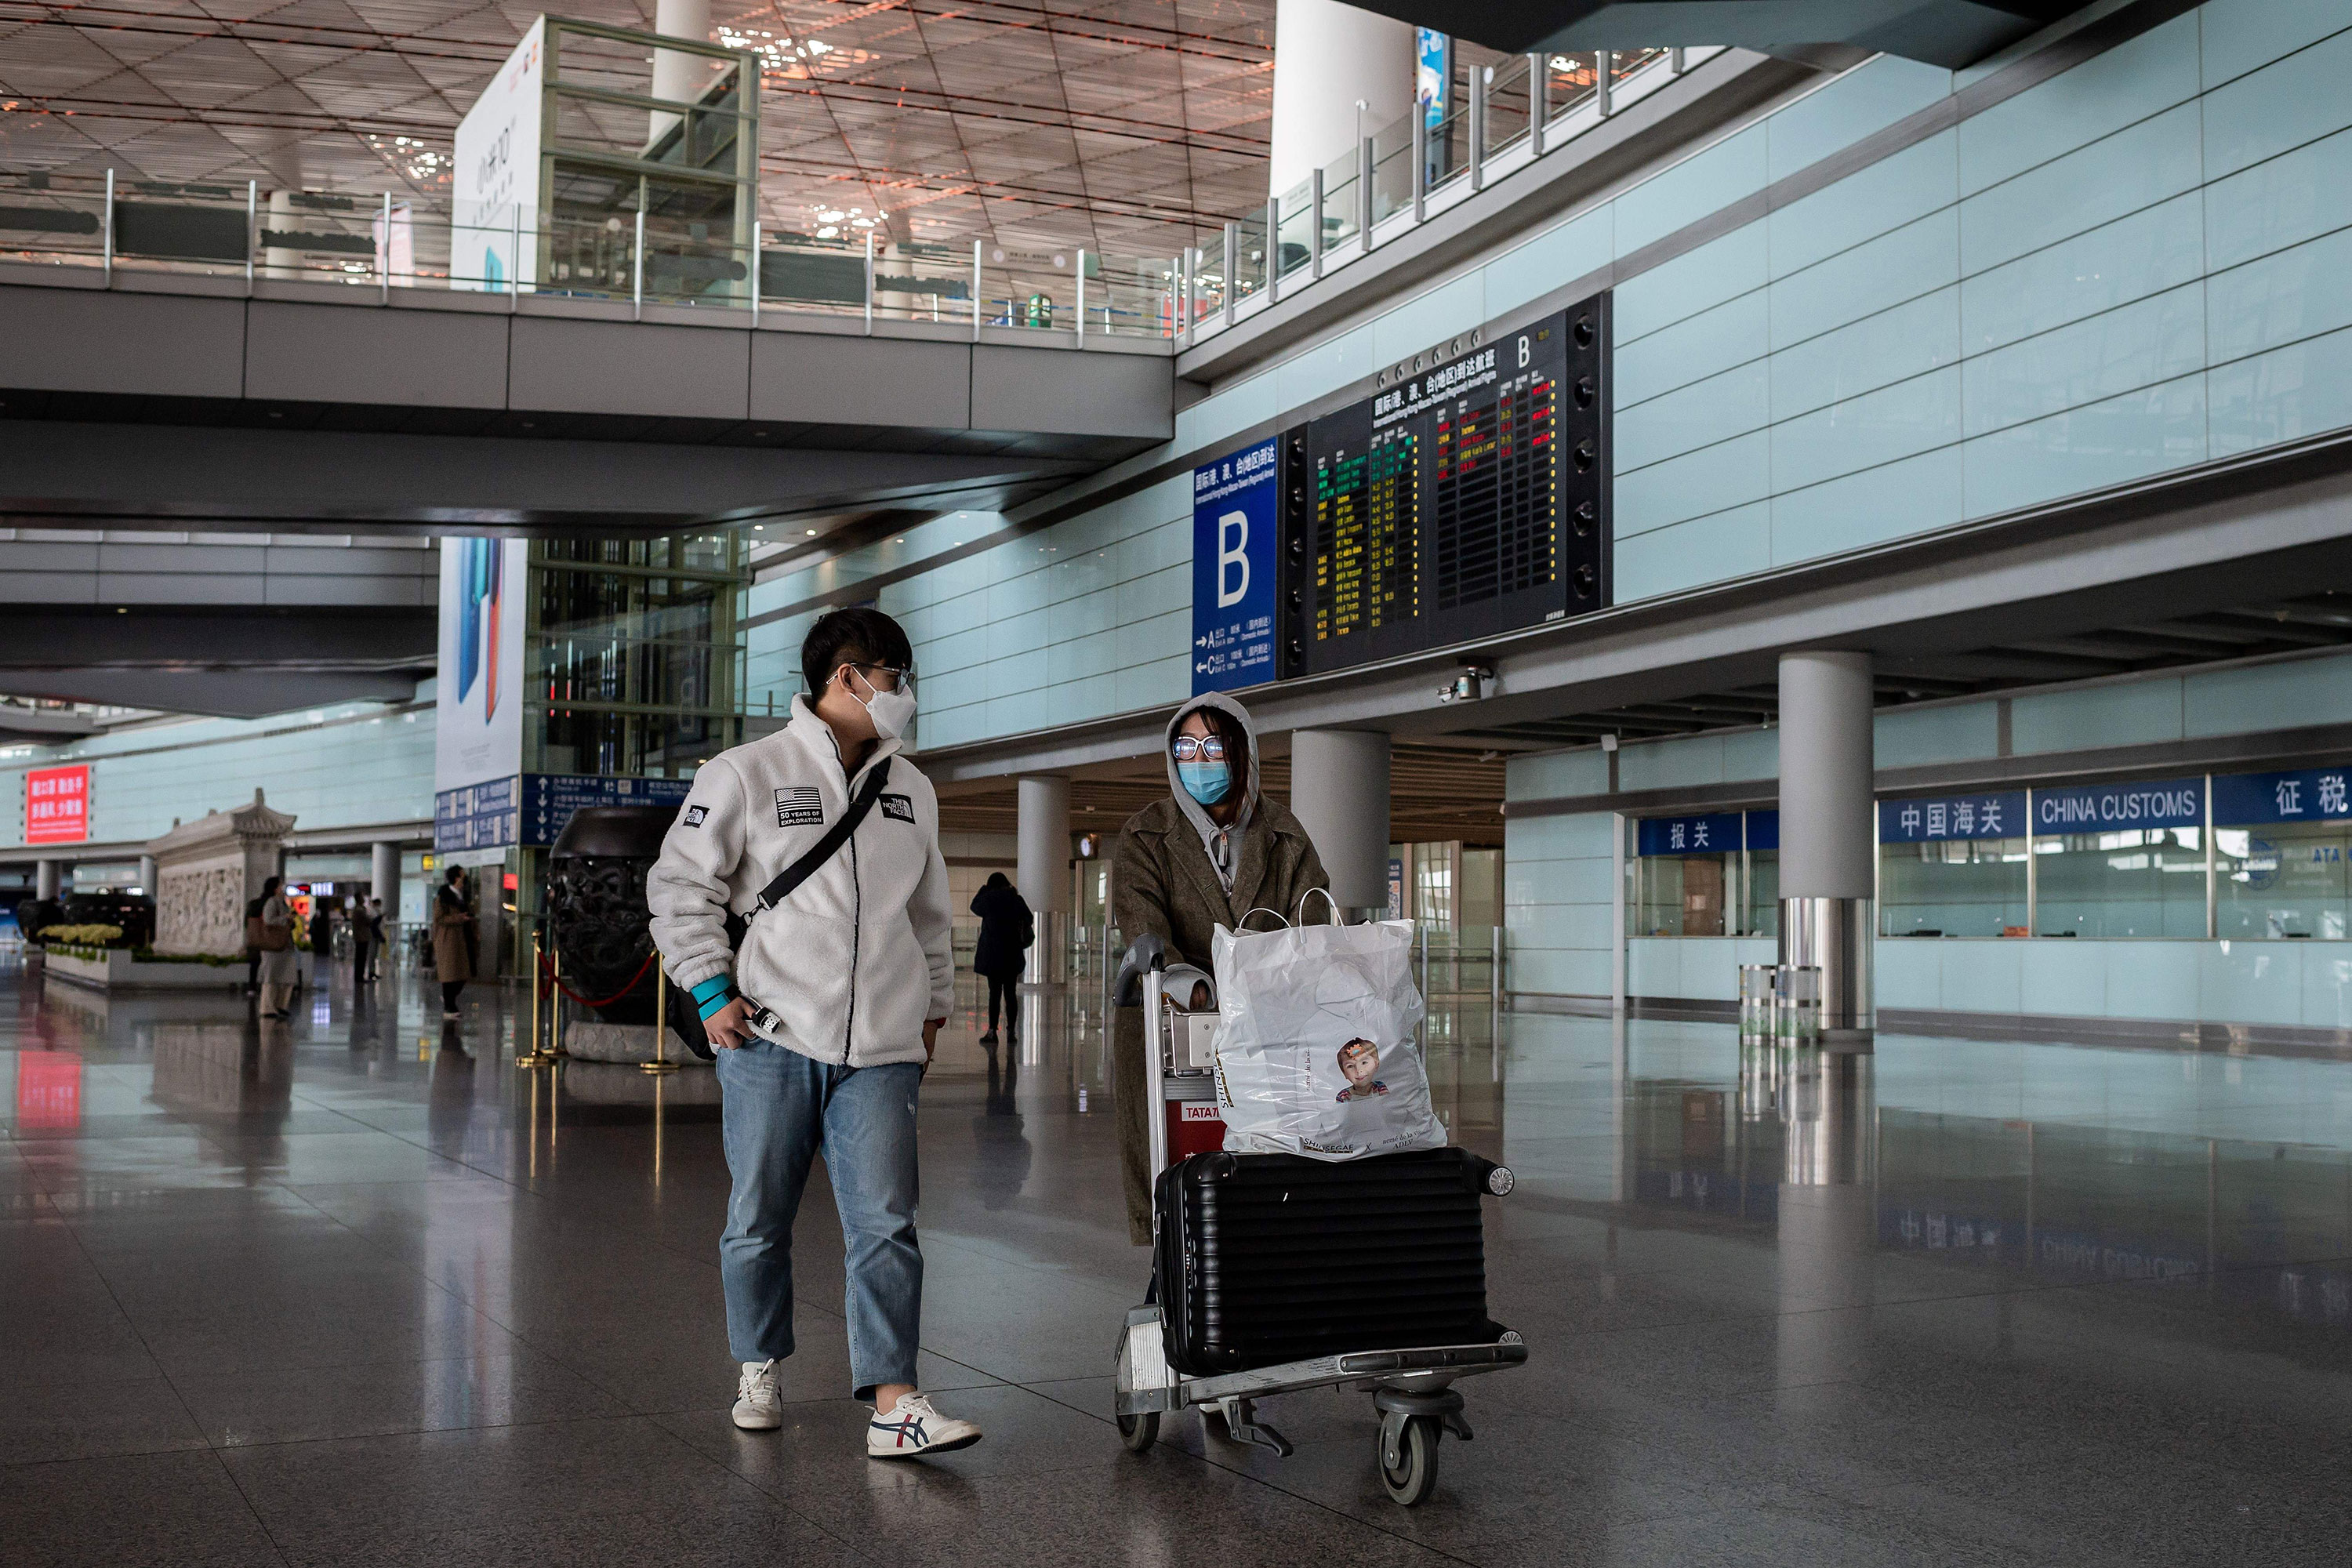 Passengers walk through a nearly empty arrivals area at Beijing Capital Airport in Beijing on March 16.